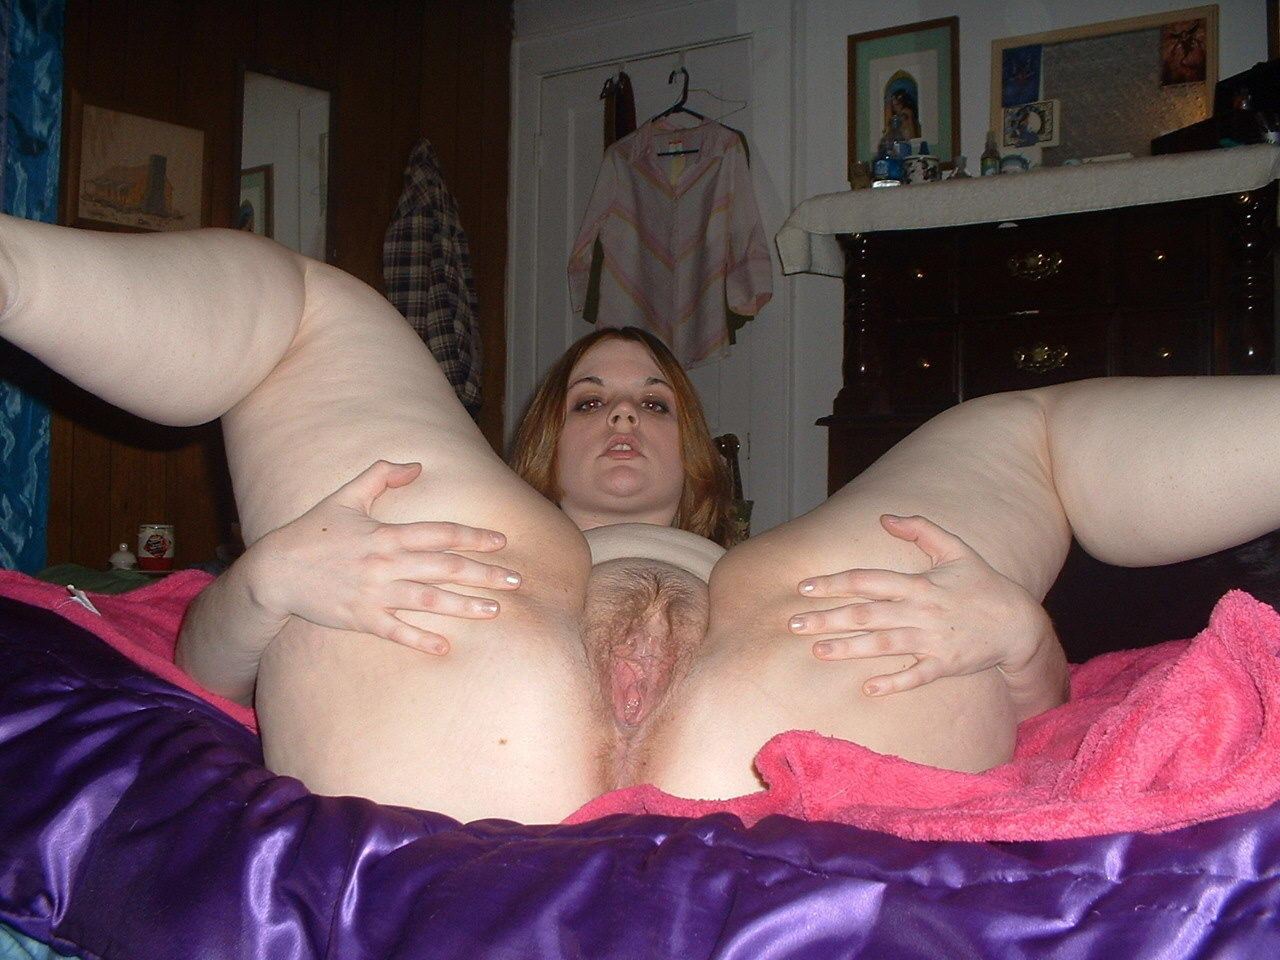 Bbw sexy naked spread eagle pussy think, that